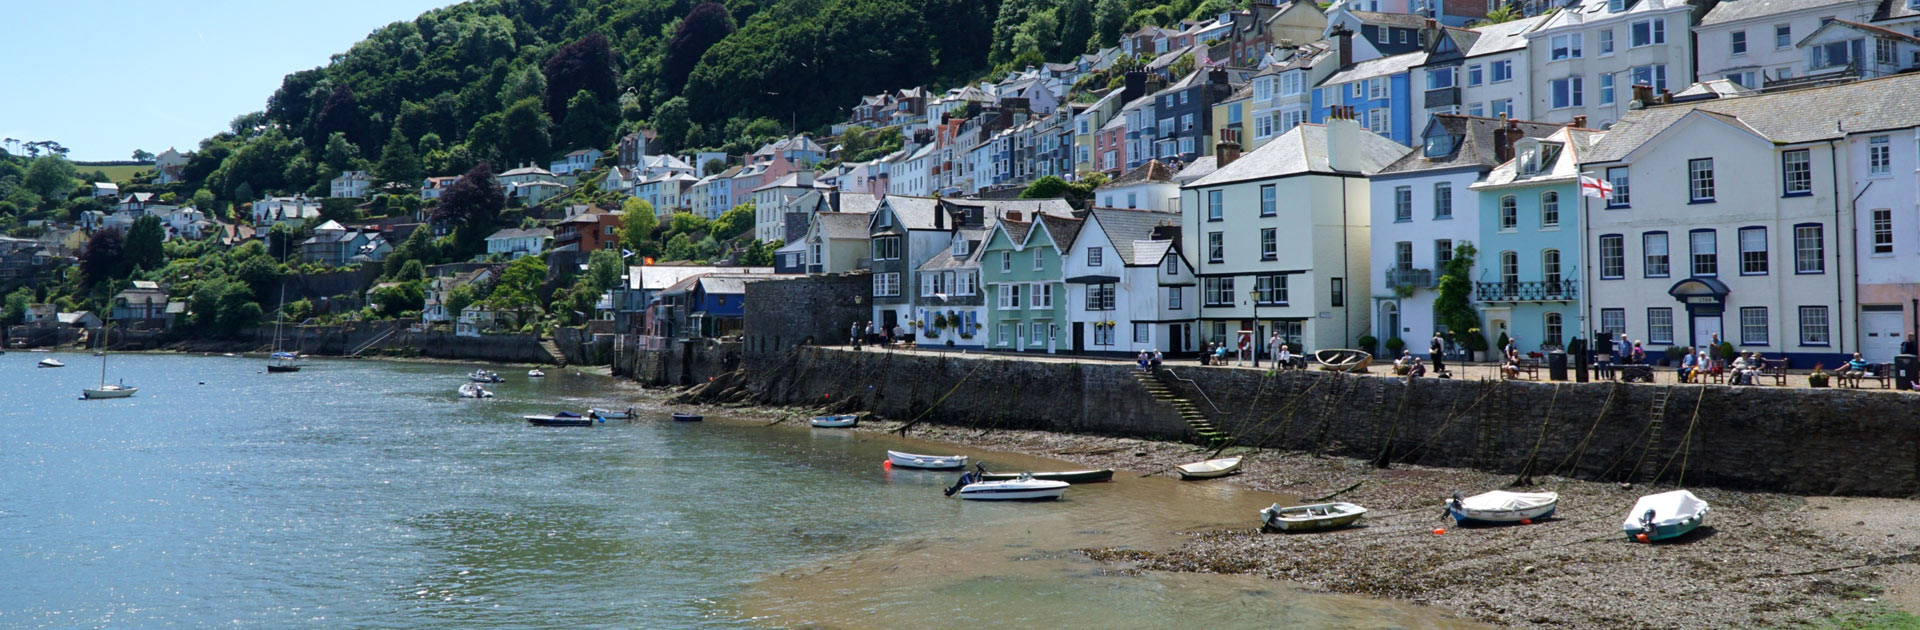 Dartmouth - Down the Estuary